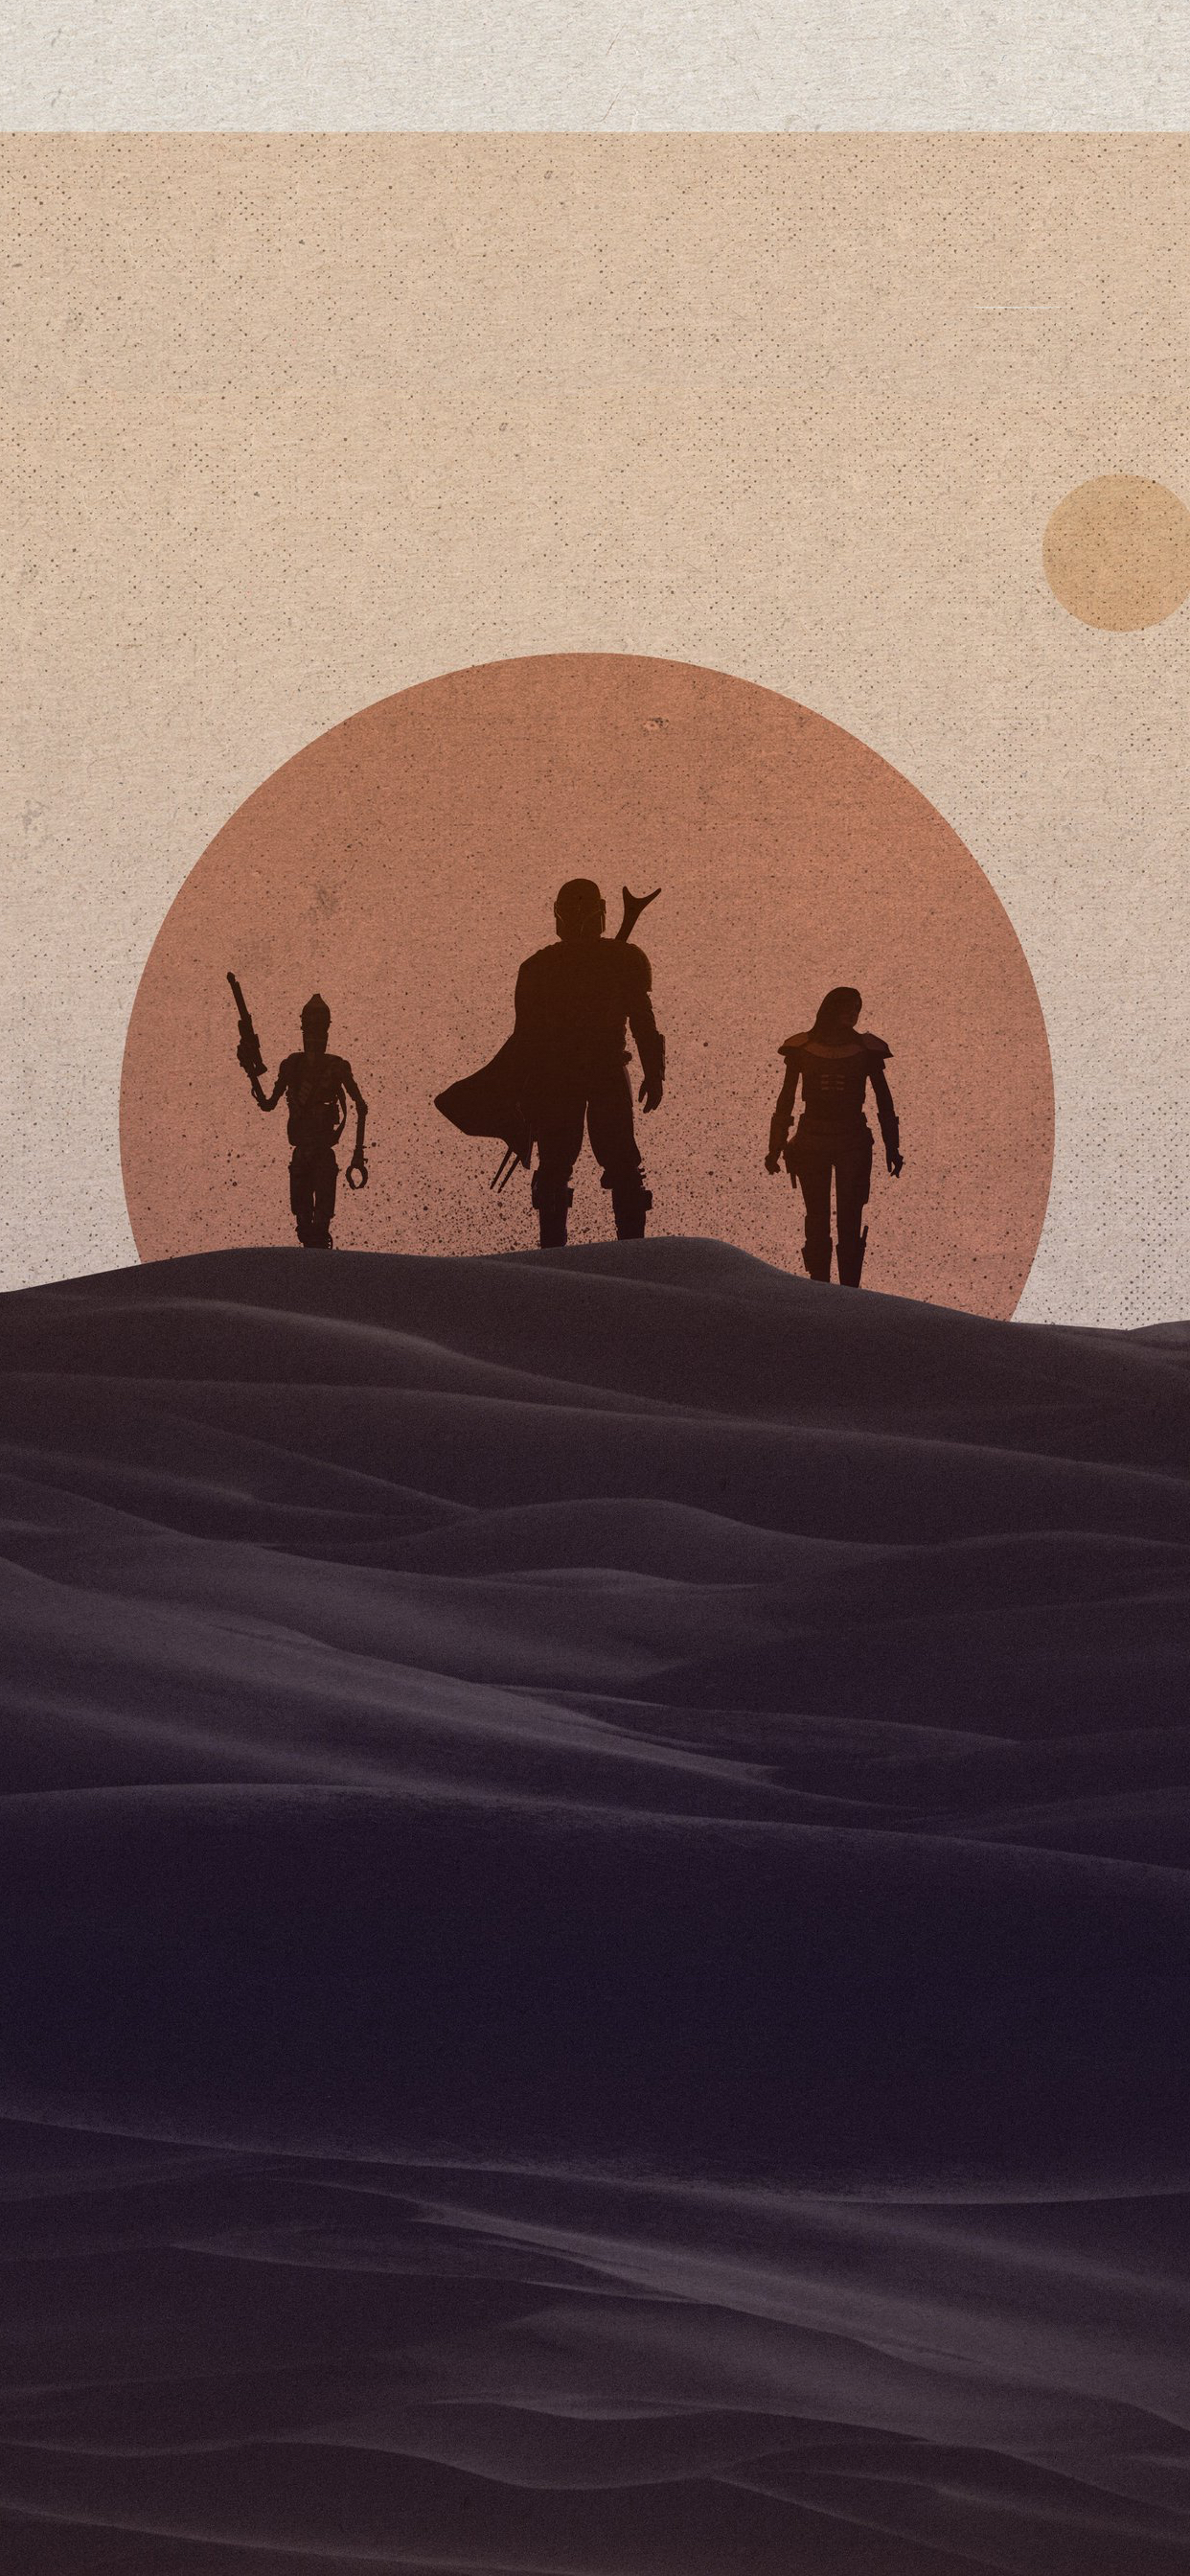 Disney Star Wars Mandalorian iPhone Wallpaper sunset needledesign